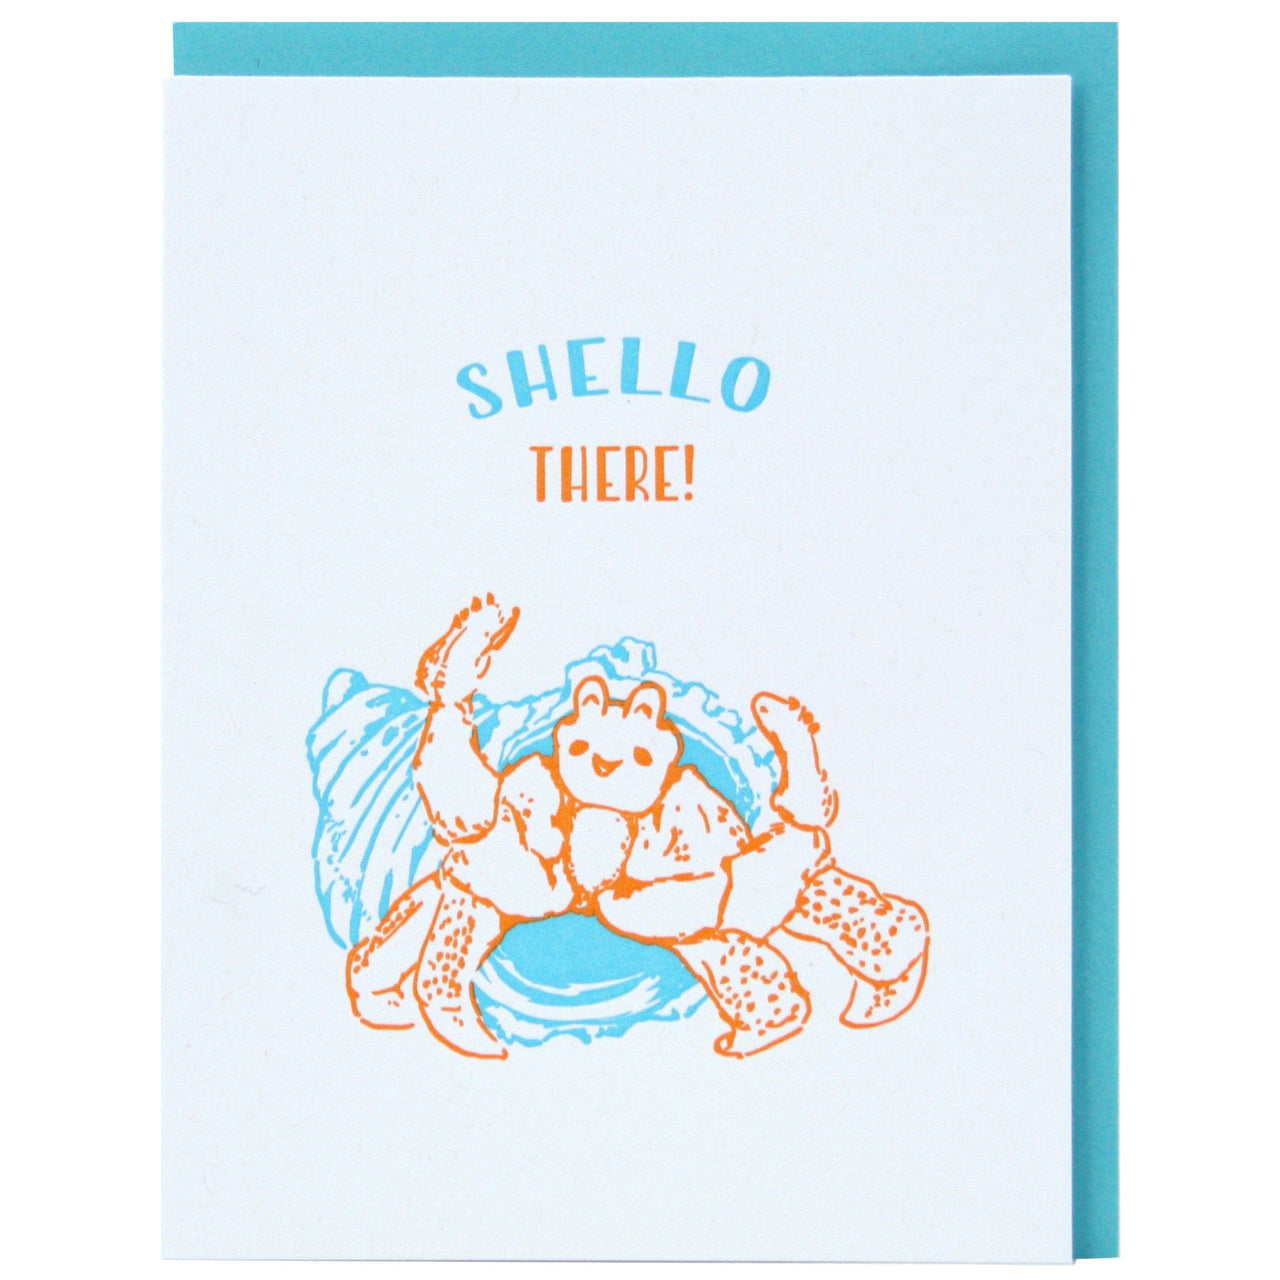 Hermit Crab Friendship Card